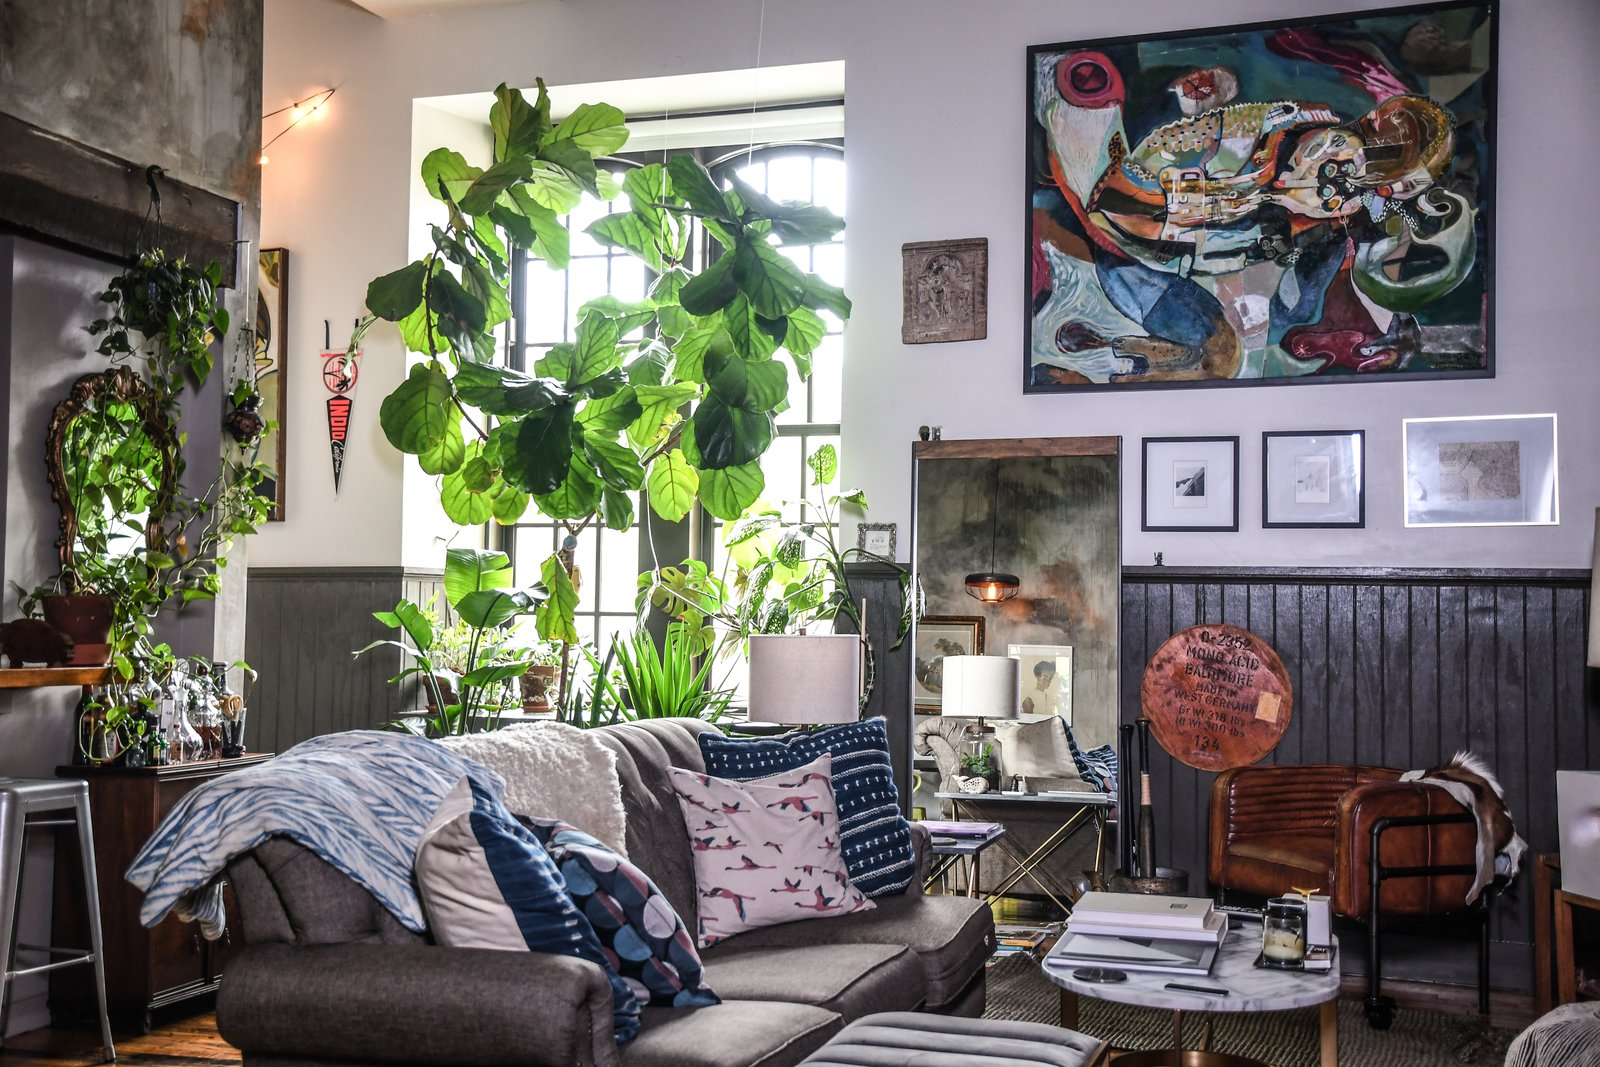 Designer Hilton Carter S Bodacious Baltimore Pad Teems With Over 300 Plants Dwell